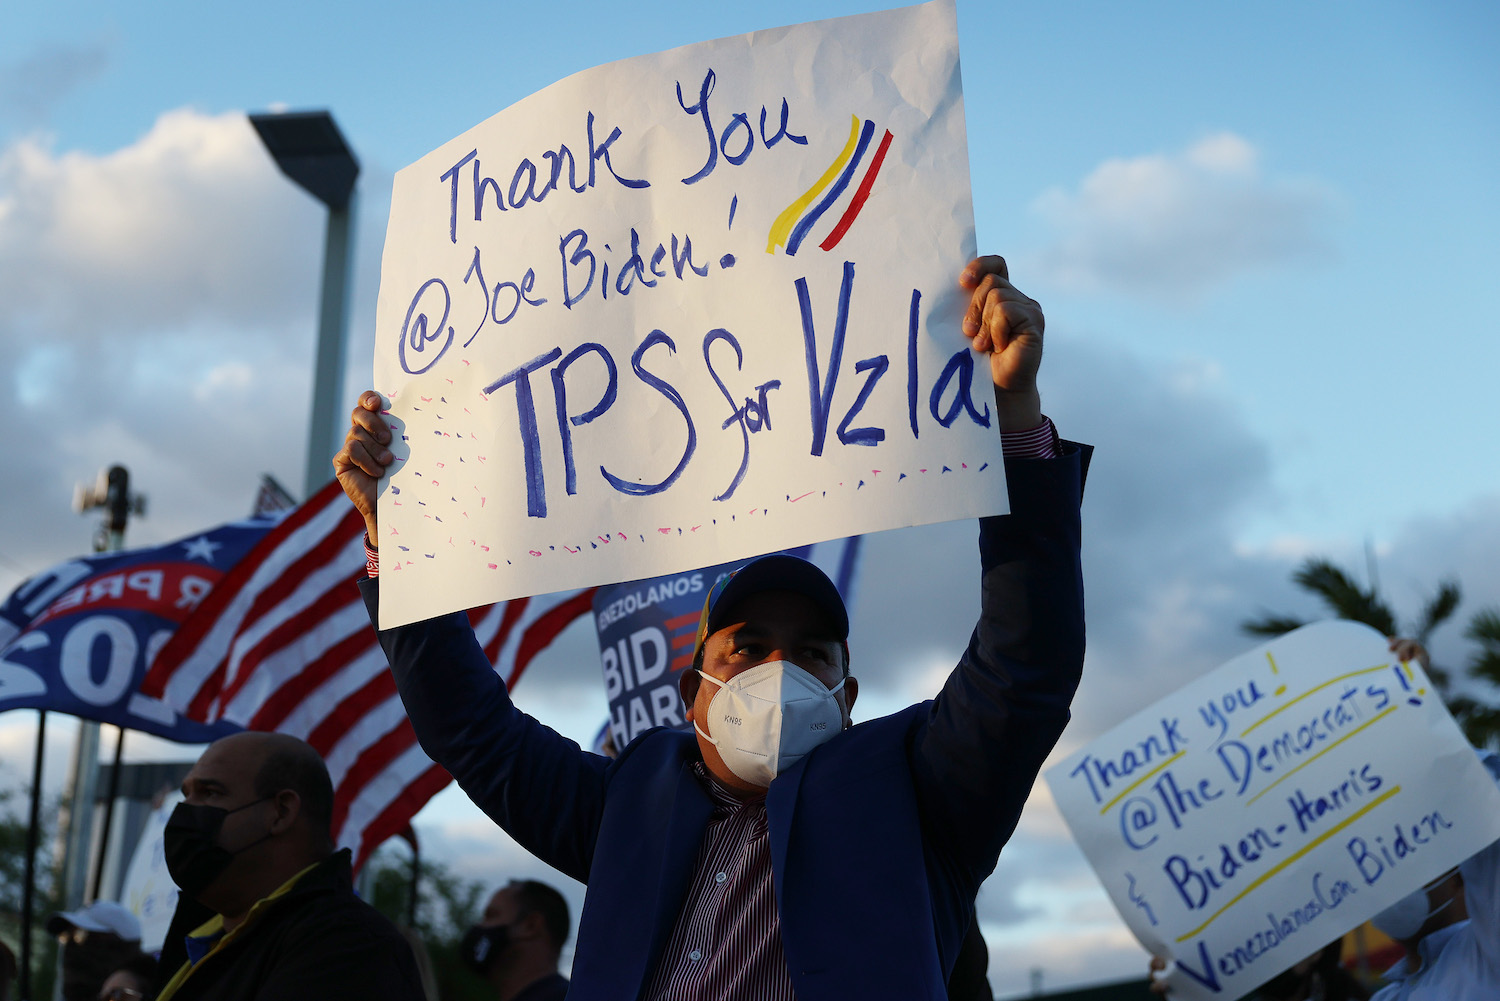 People with signs show their support for an order signed by U.S. President Joe Biden granting temporary protective status for thousands of Venezuelans in Doral, Florida on March 09.